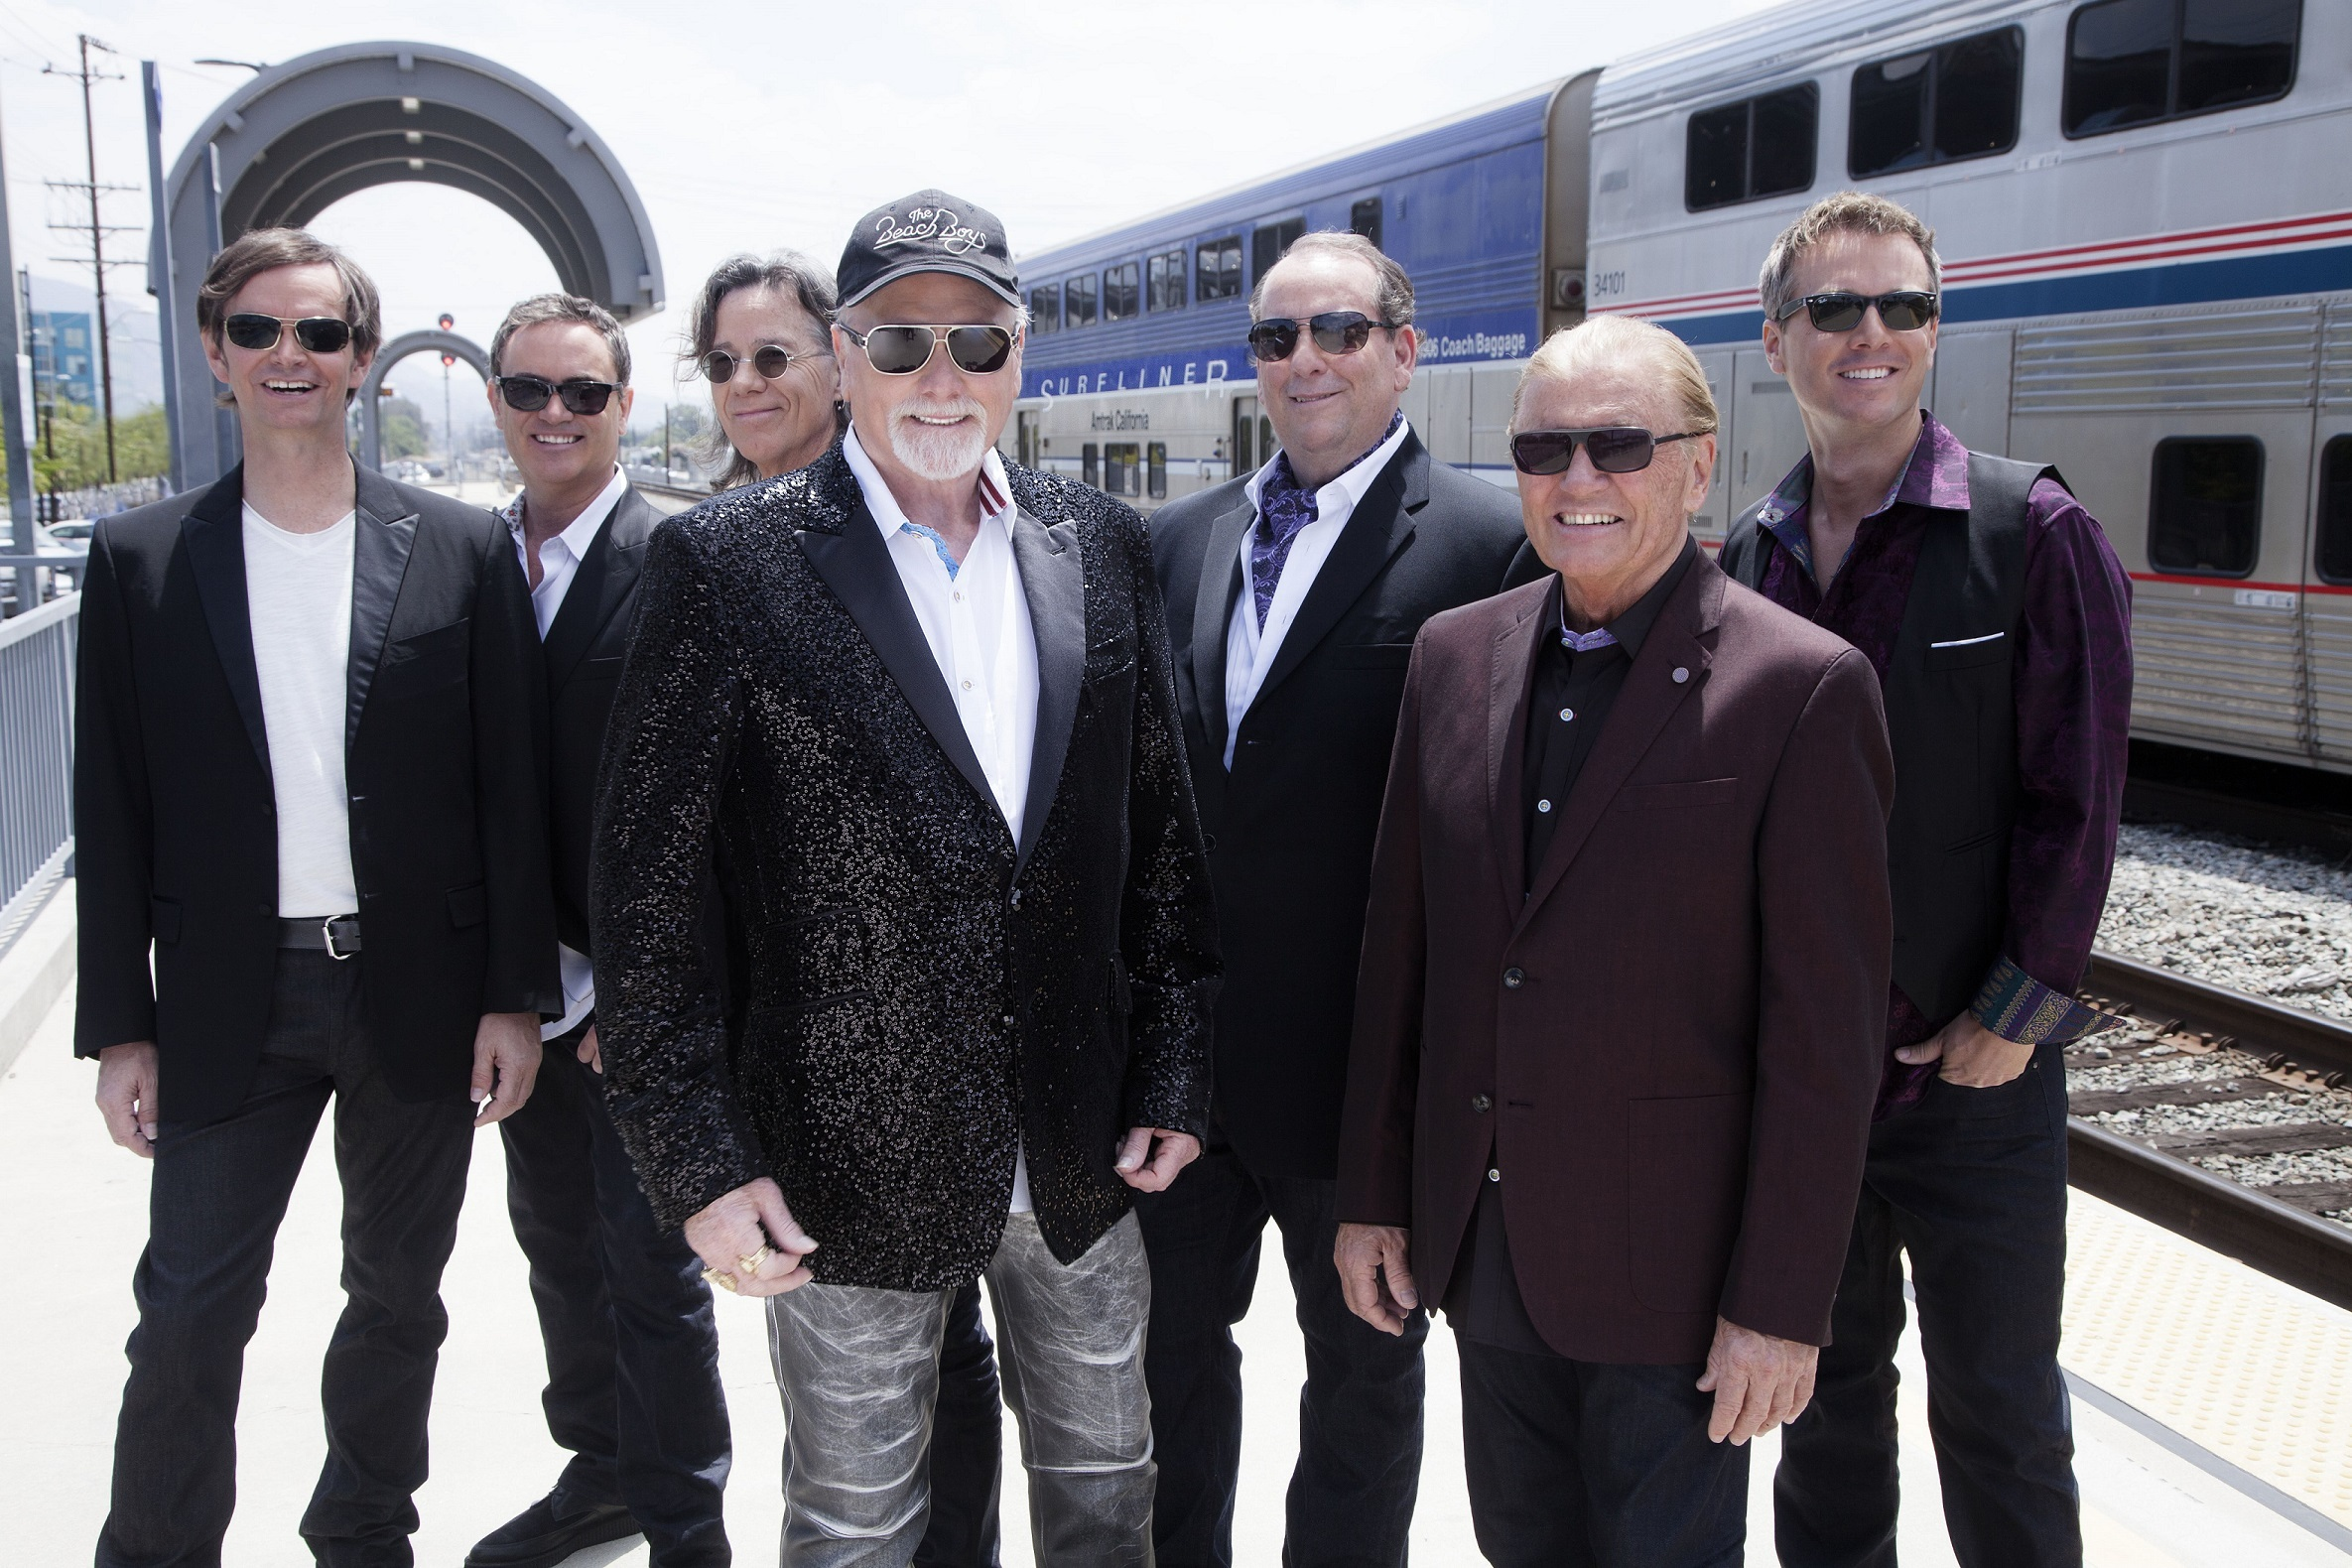 The Beach Boys said they were thrilled to be at Montrose Music Festival